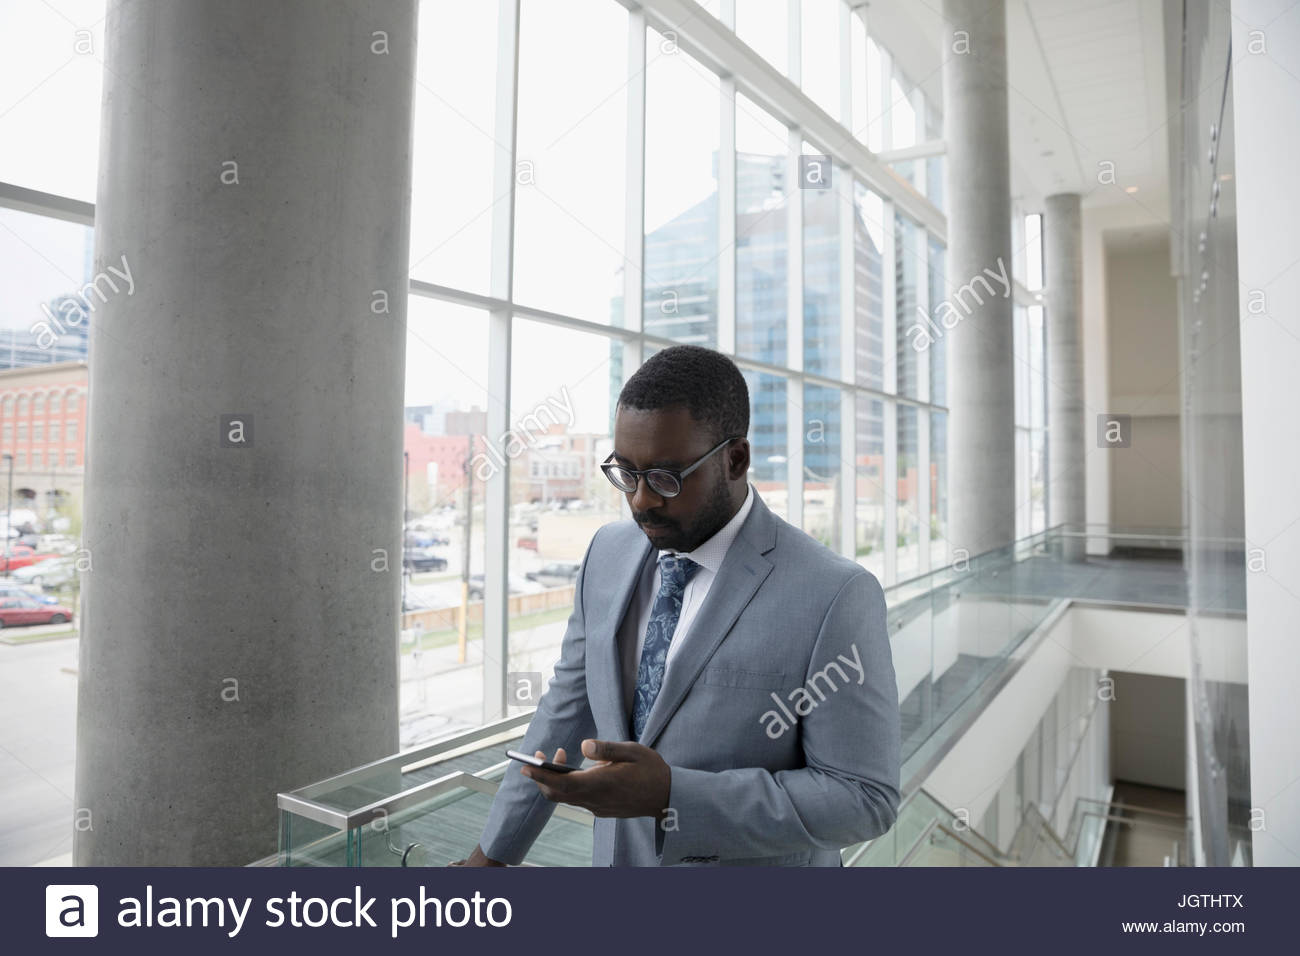 Businessman texting with cell phone in office Photo Stock